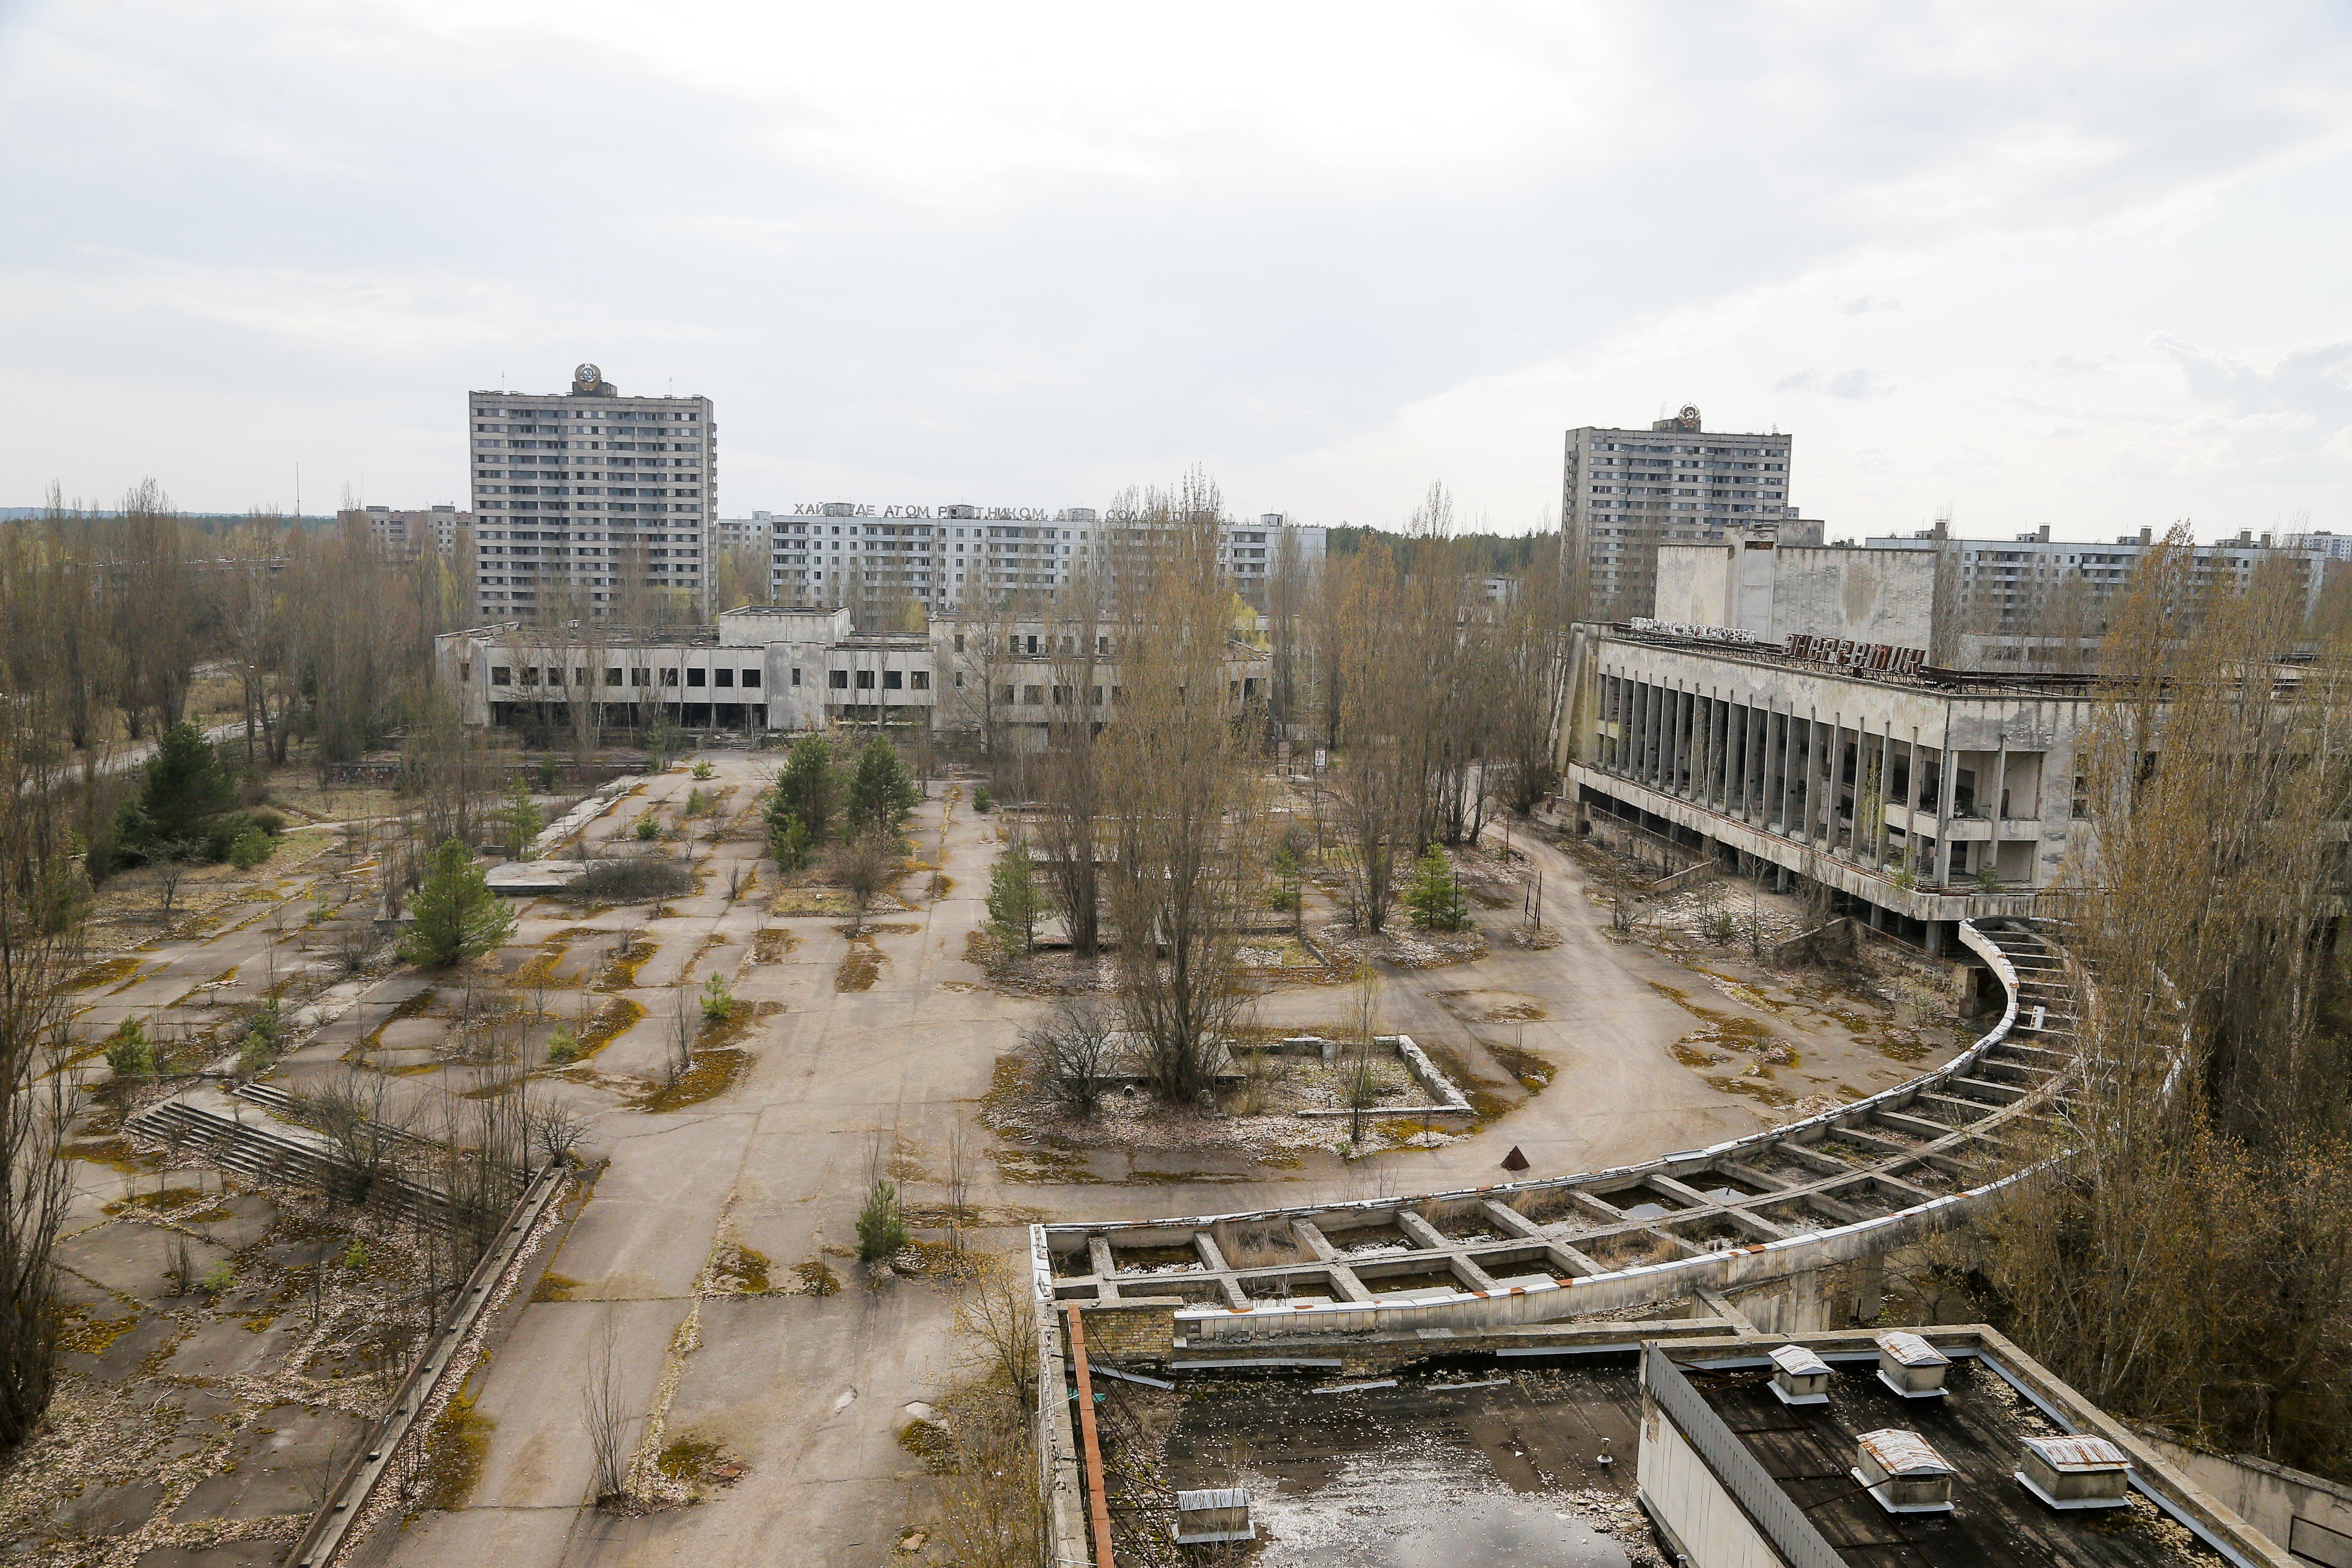 Chernobyl Aftermath-1 This photo taken Wednesday, April 5, 2017, shows a central square in the deserted town of Pripyat, some 3 kilometers (1.86 miles) from the Chernobyl nuclear power plant Ukraine. Once home to some 50,000 people whose lives were connected to the Chernobyl nuclear power plant, Pripyat was hastily evacuated one day after a reactor at the plant 3 kilometers (2 miles away) exploded on April 26, 1986. The explosion and the subsequent fire spewed a radioactive plume over much of northern Europe. (AP Photo/Efrem Lukatsky)